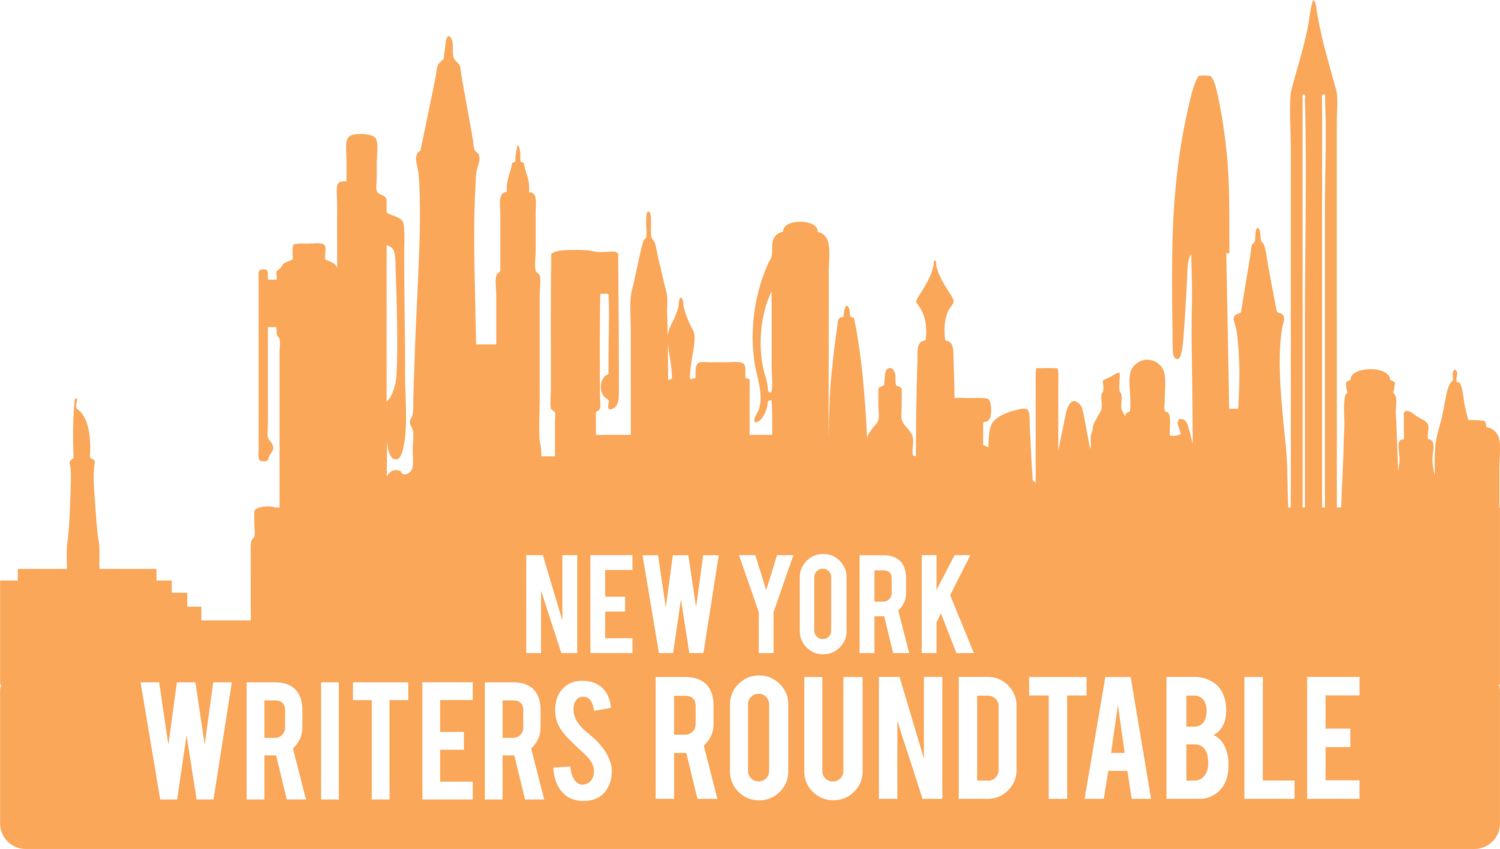 New York Writers Roundtable